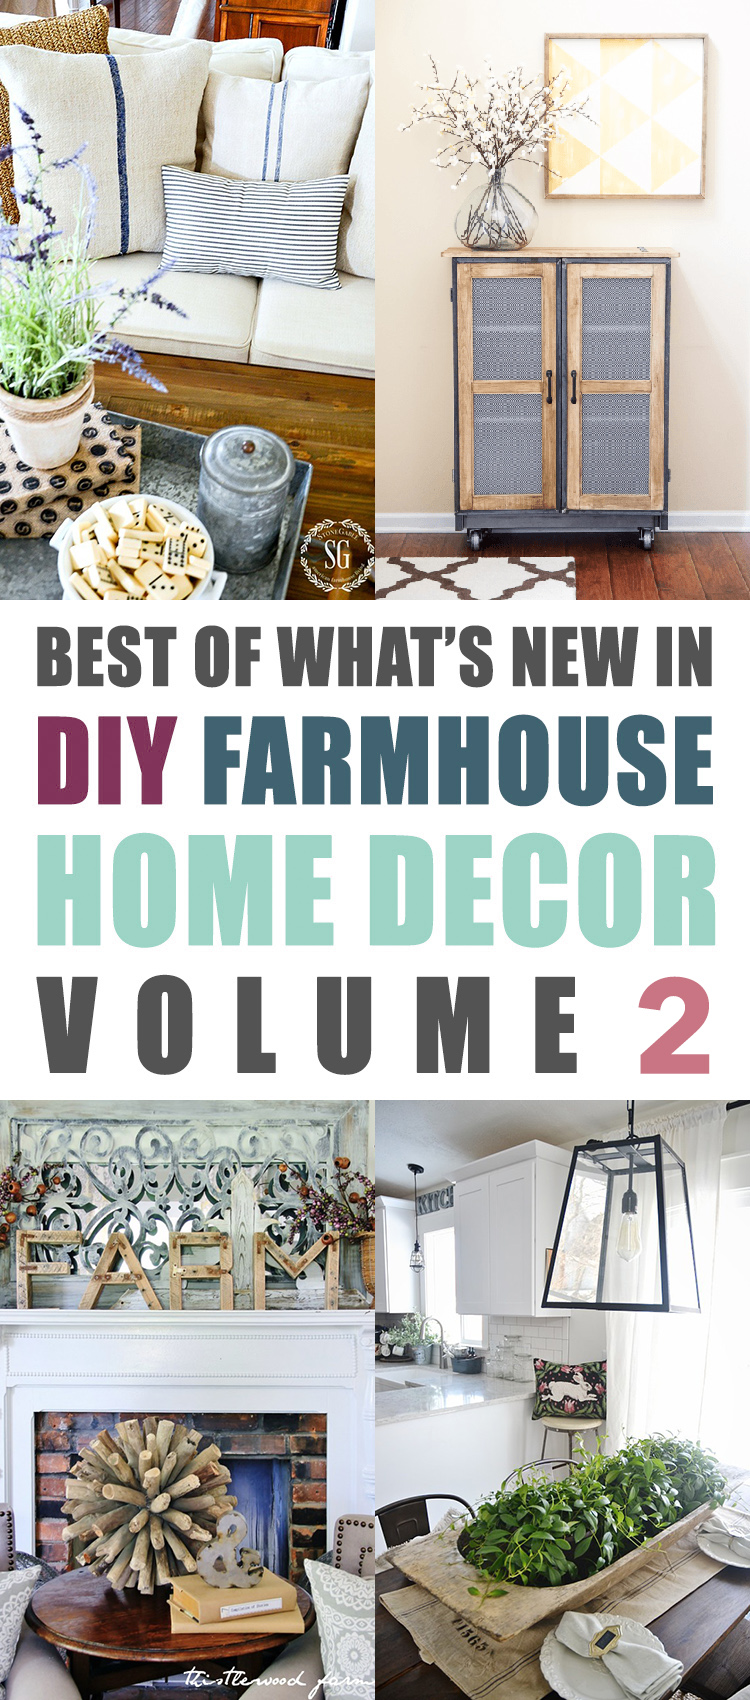 The Best Of What's New In DIY Farmhouse Home Decor Volume 2